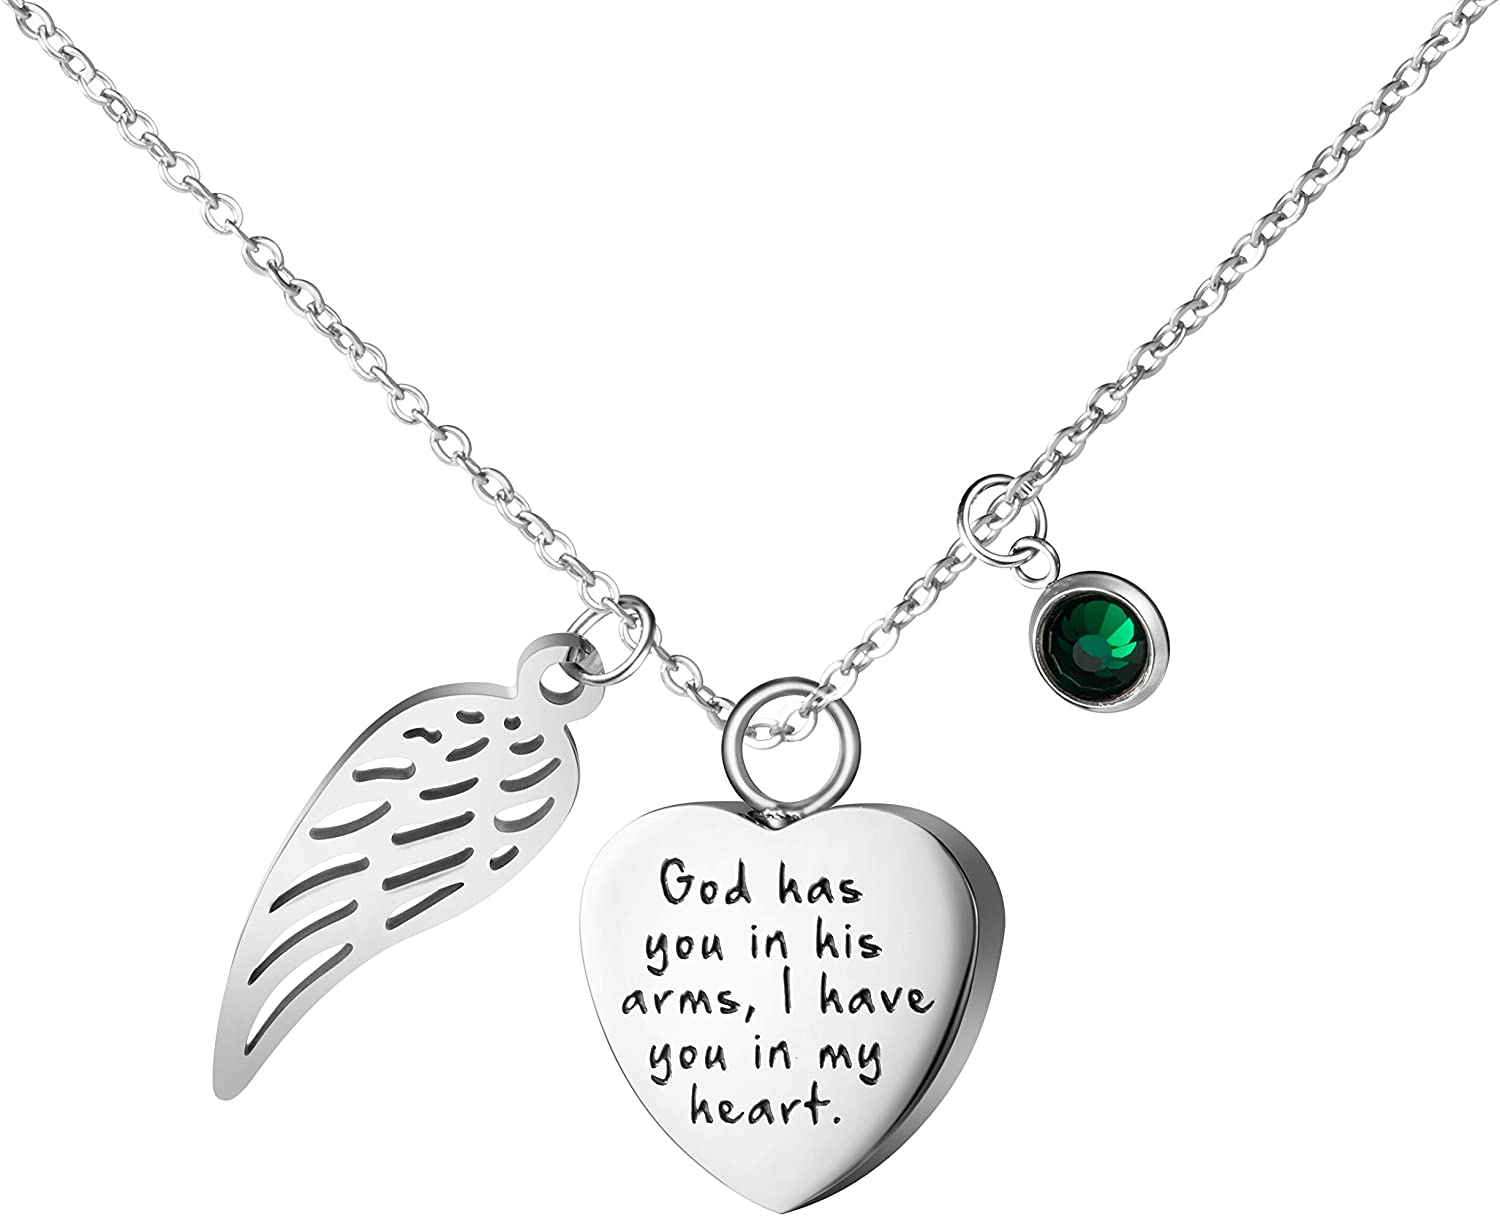 Joycuff Personalized Memorial Necklace Sympathy Gifts for Women Teen Girls Loss of Loved One Remembrance Jewelry Birthstone Charm Silver Stainless Steel Pendant